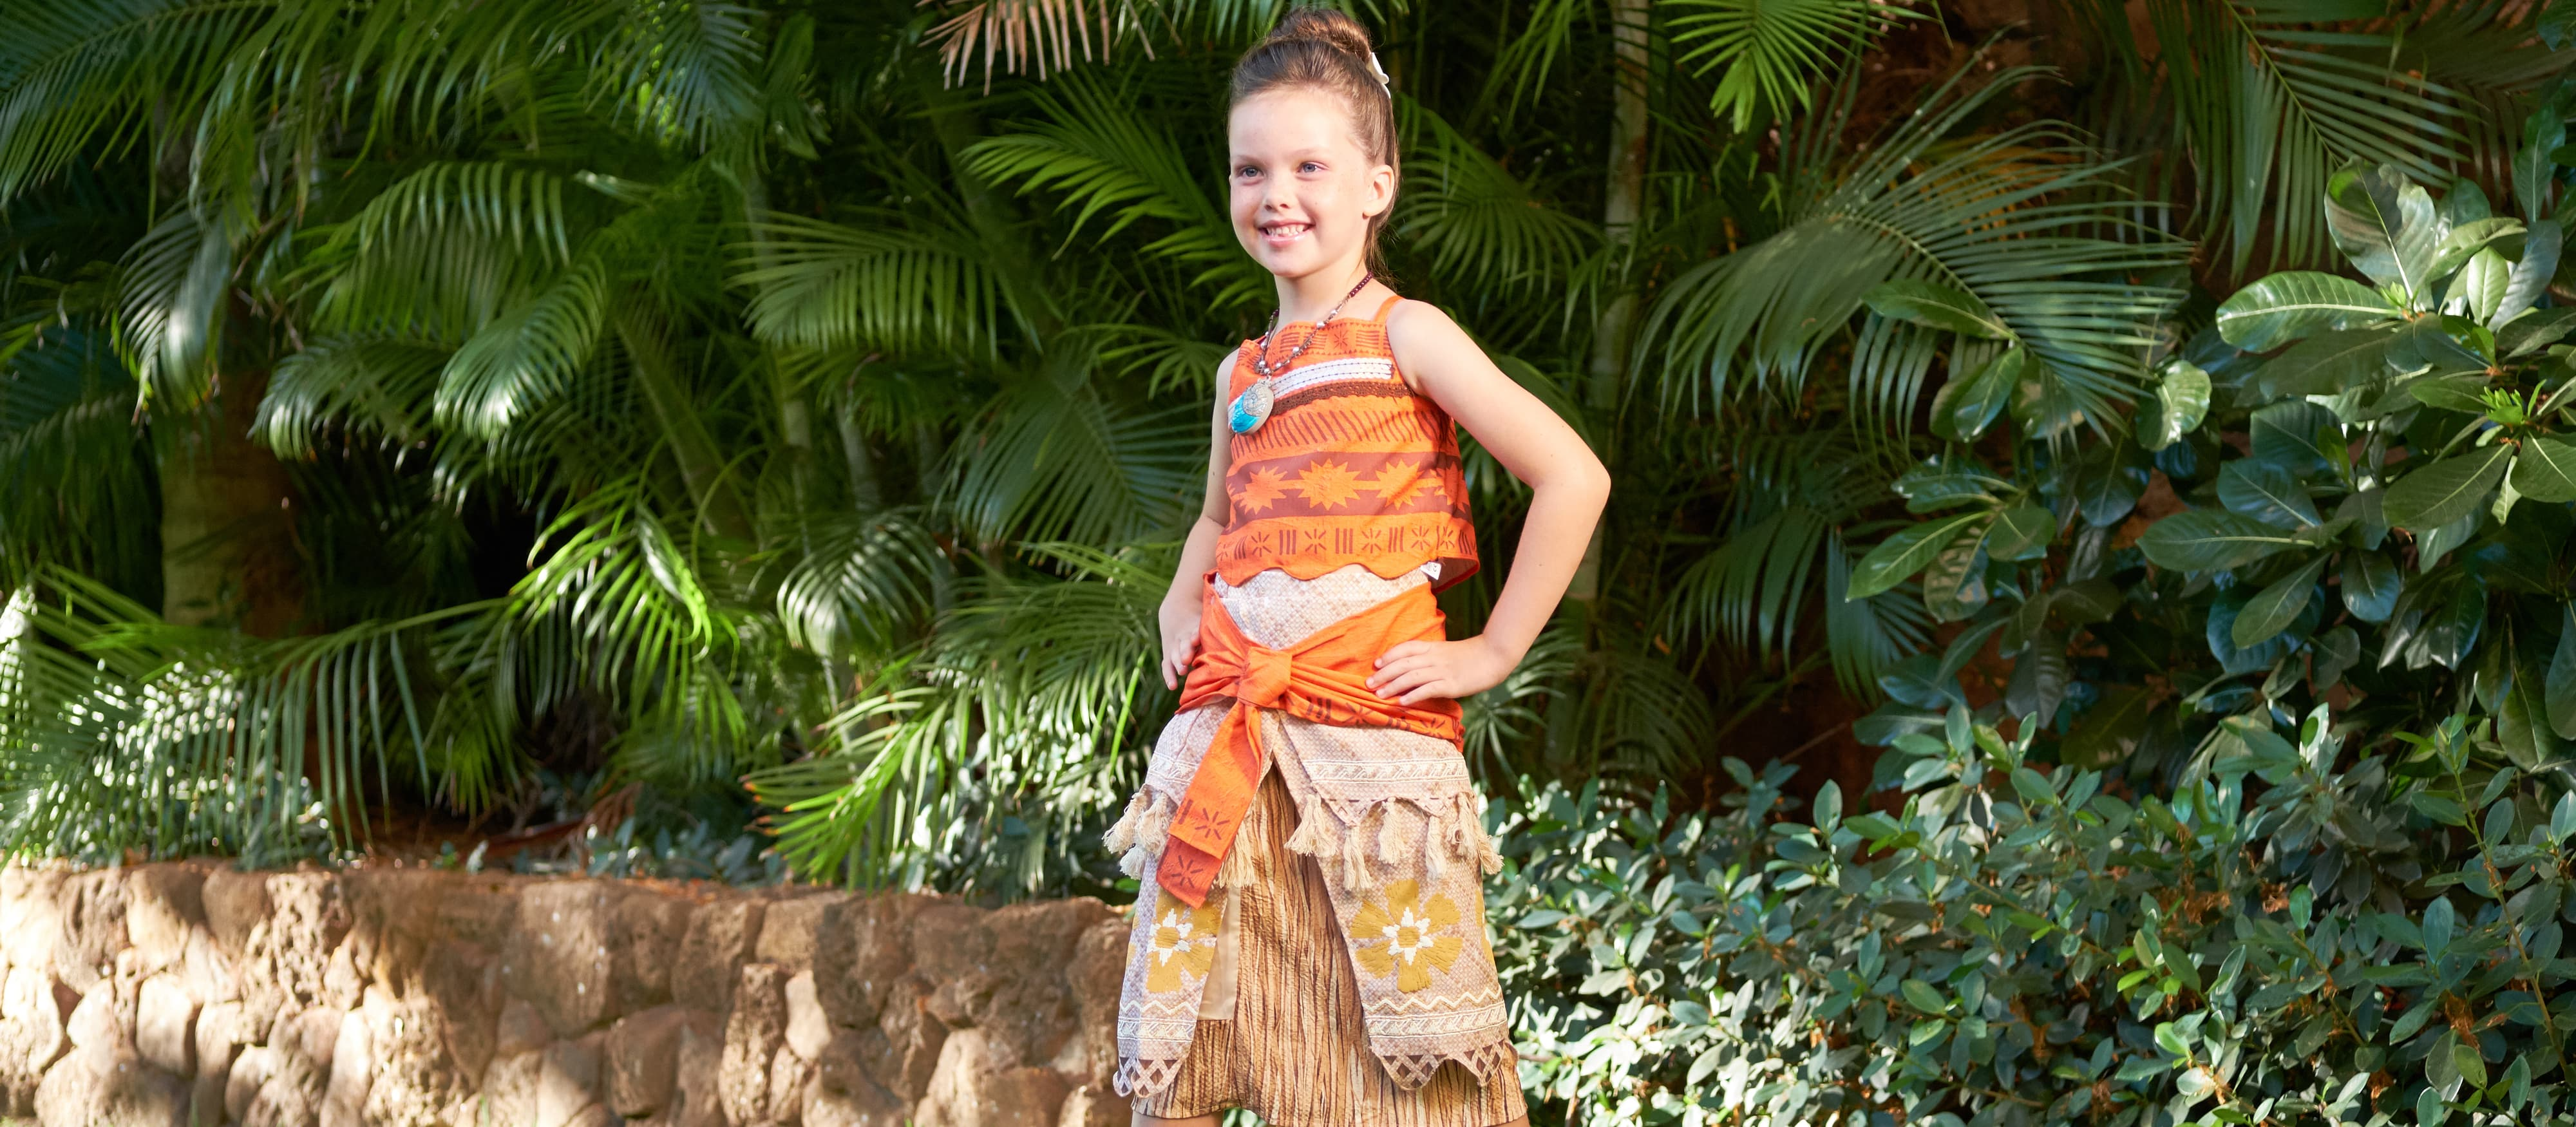 A young girl in a Moana costume poses in front of some foliage